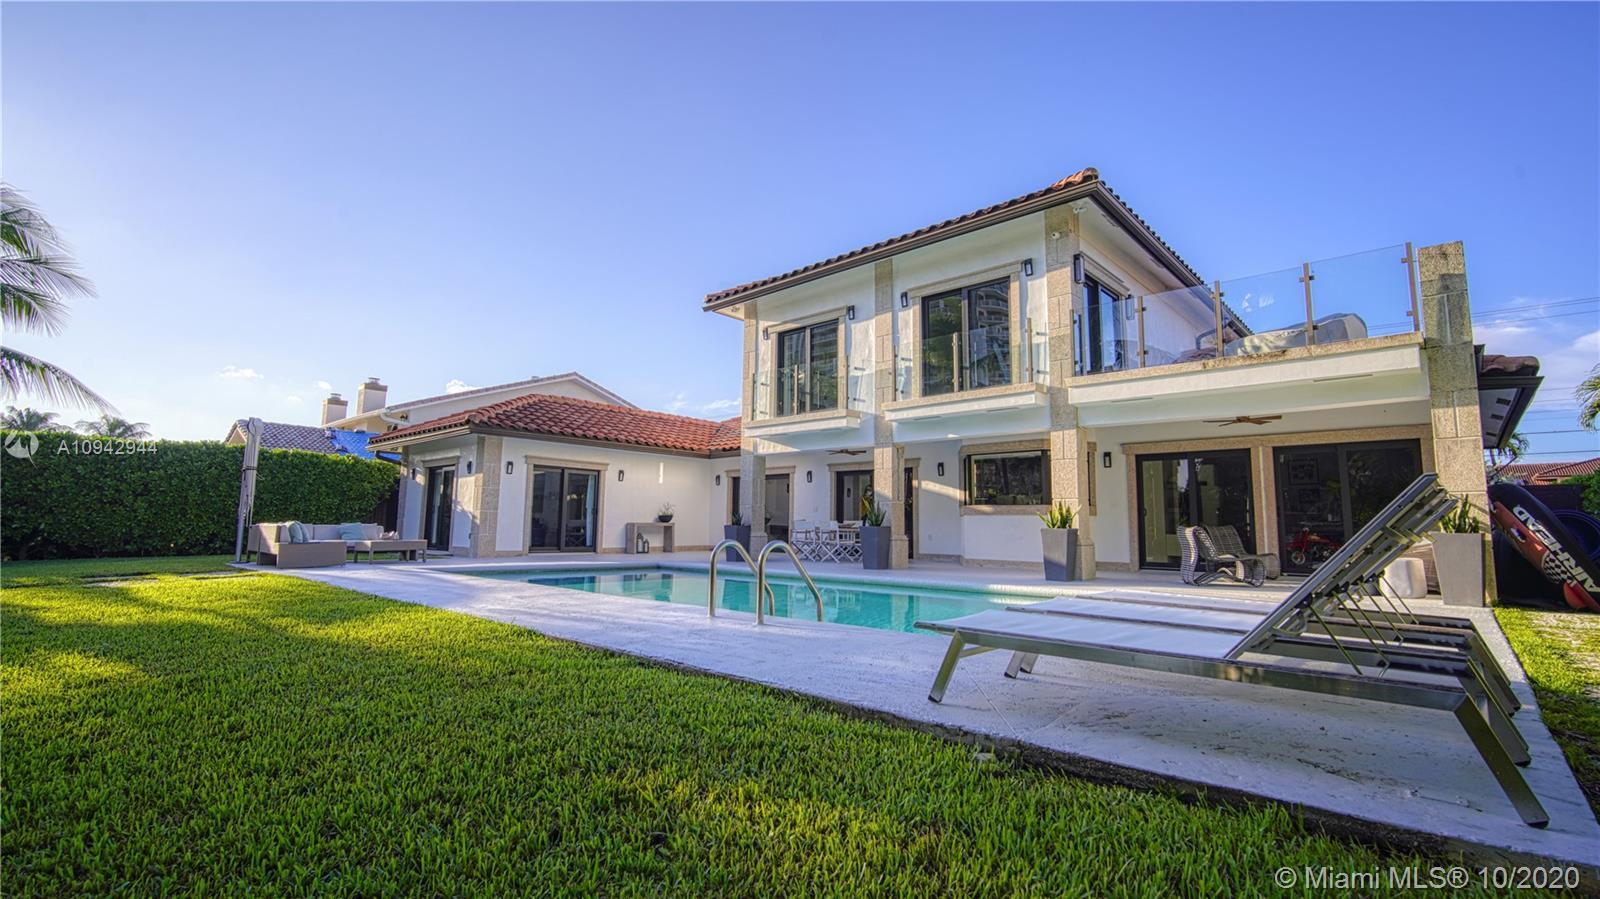 EXCELLENT OPPORUNITY in the Luxury Golden Isles Community, Every parts of this Estates Home have bee